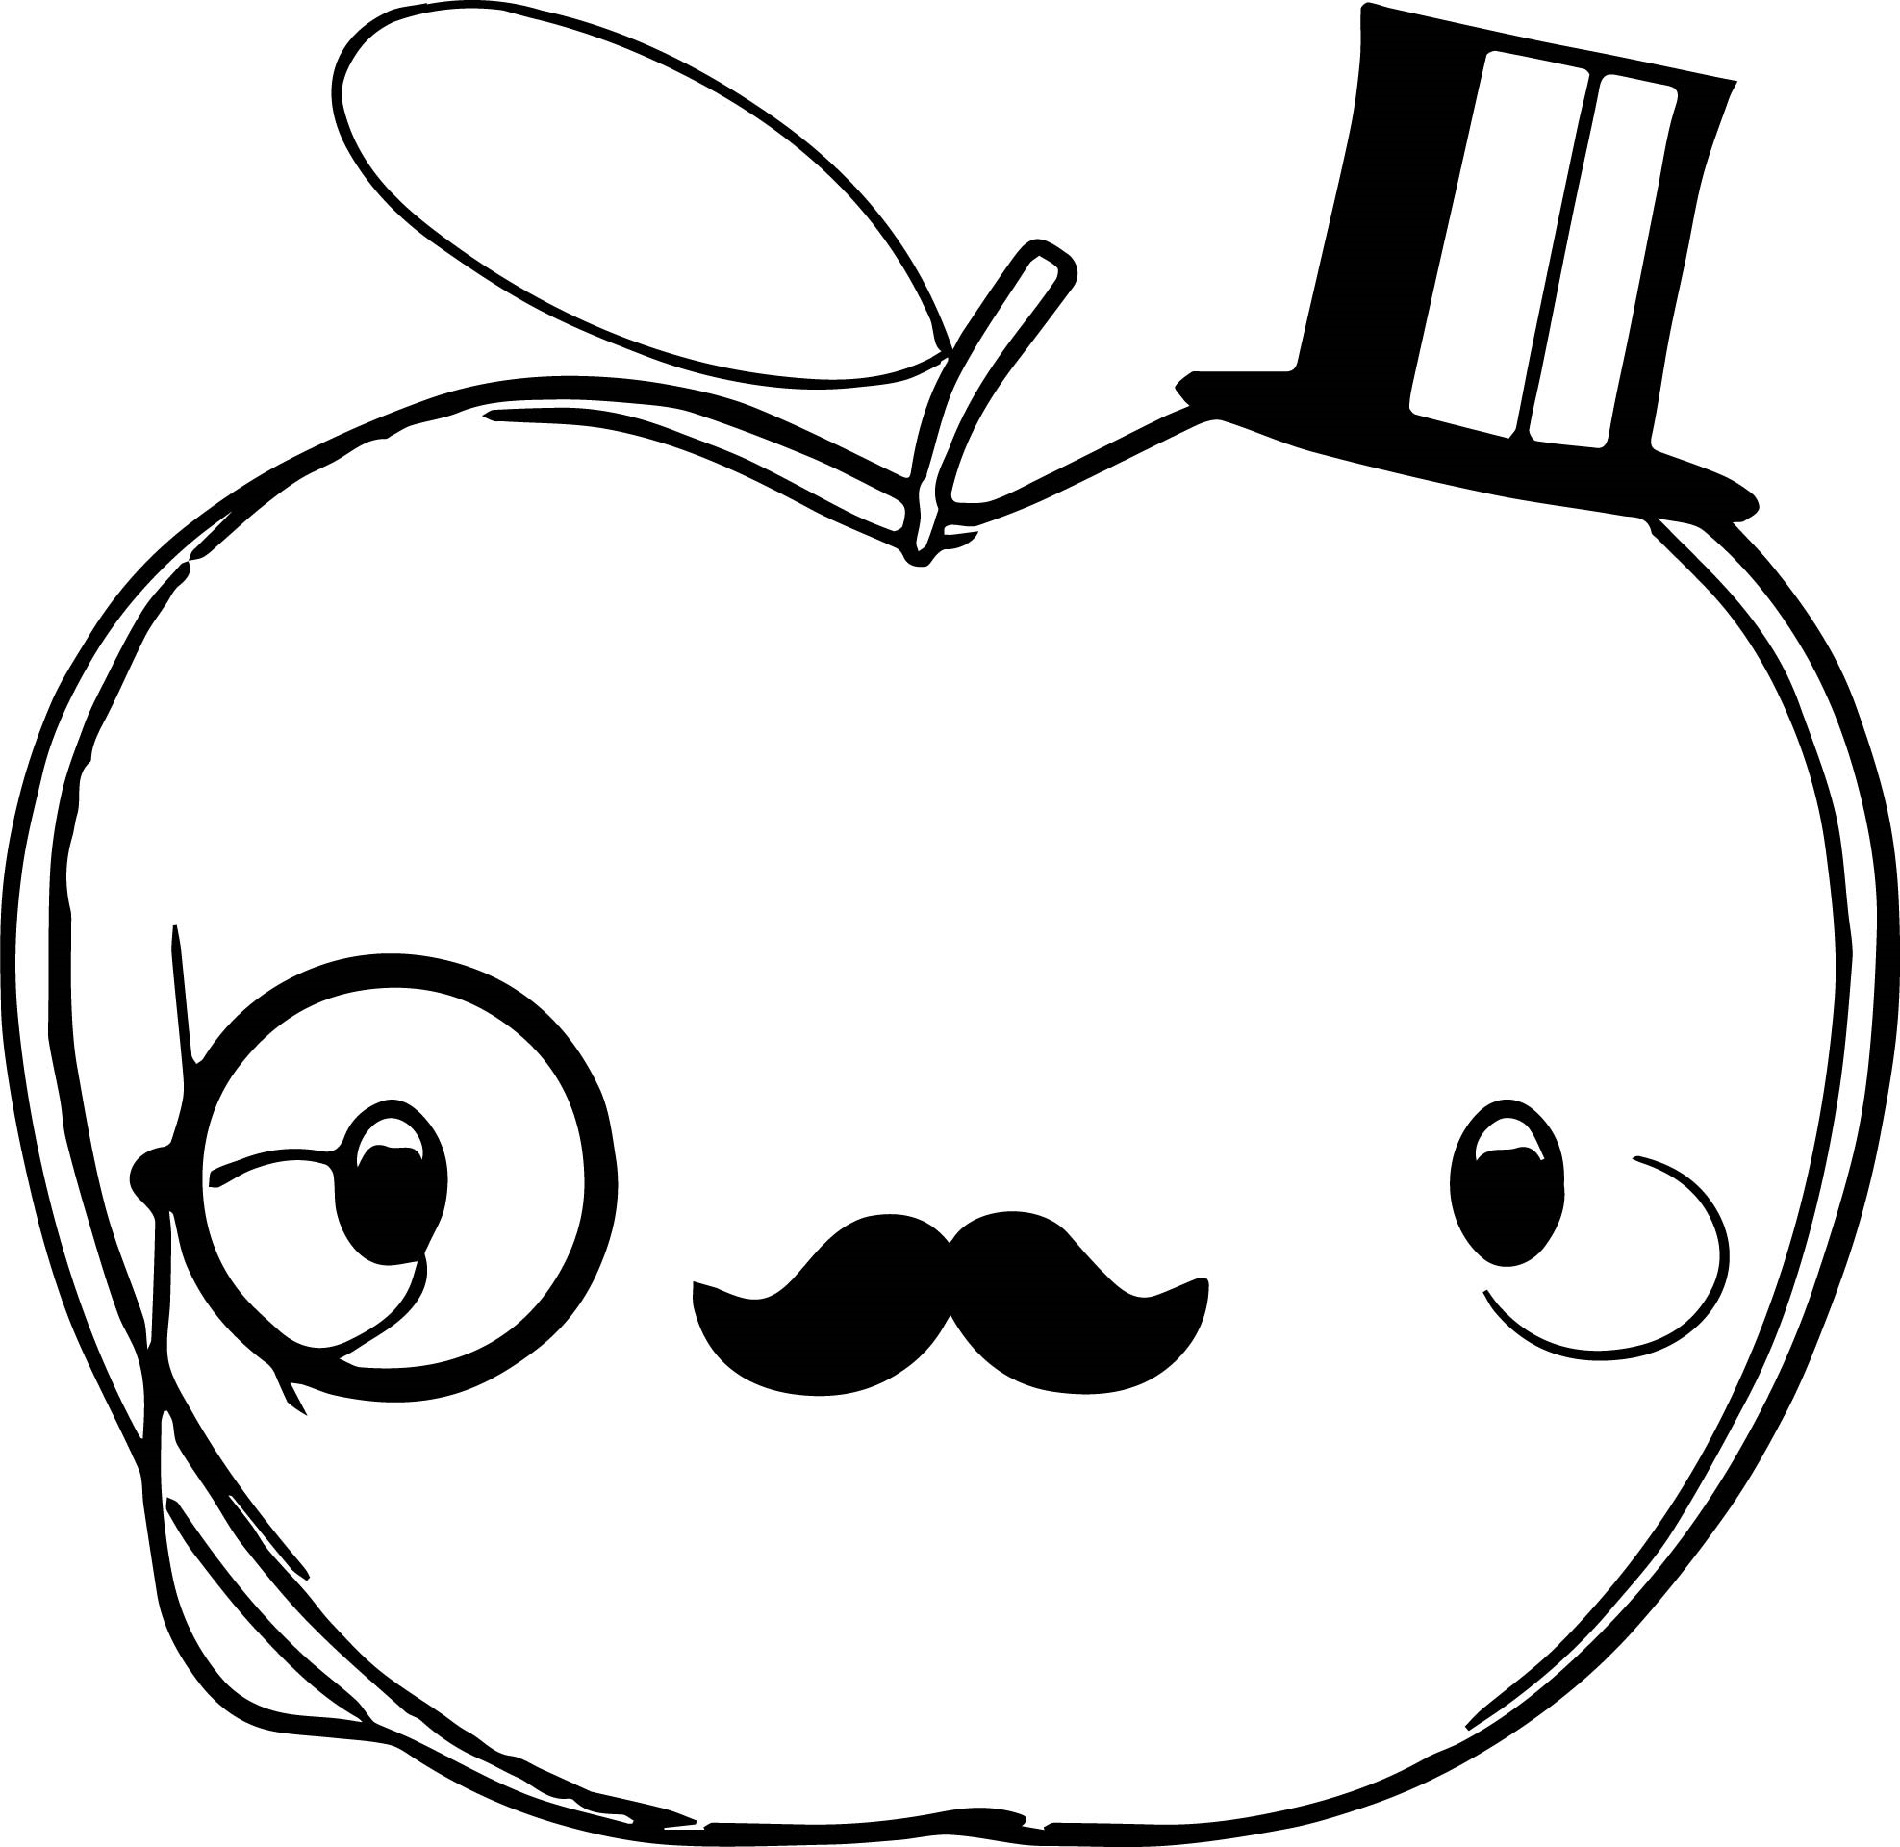 apple for coloring free printable apple coloring pages for kids coloring for apple 1 1